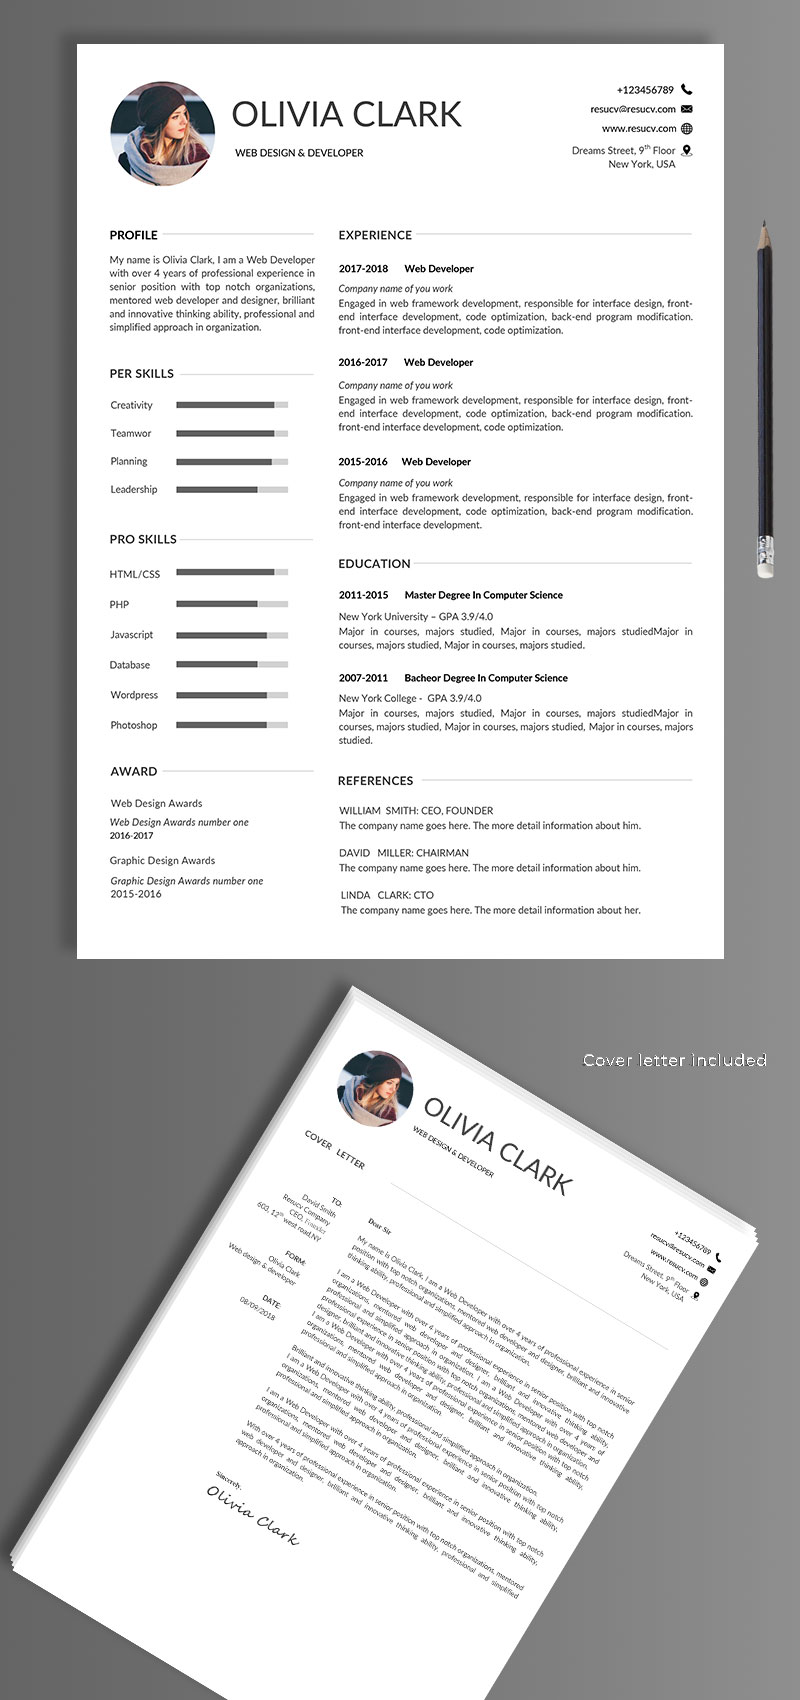 Simple clean resume/cv templates with cover letter